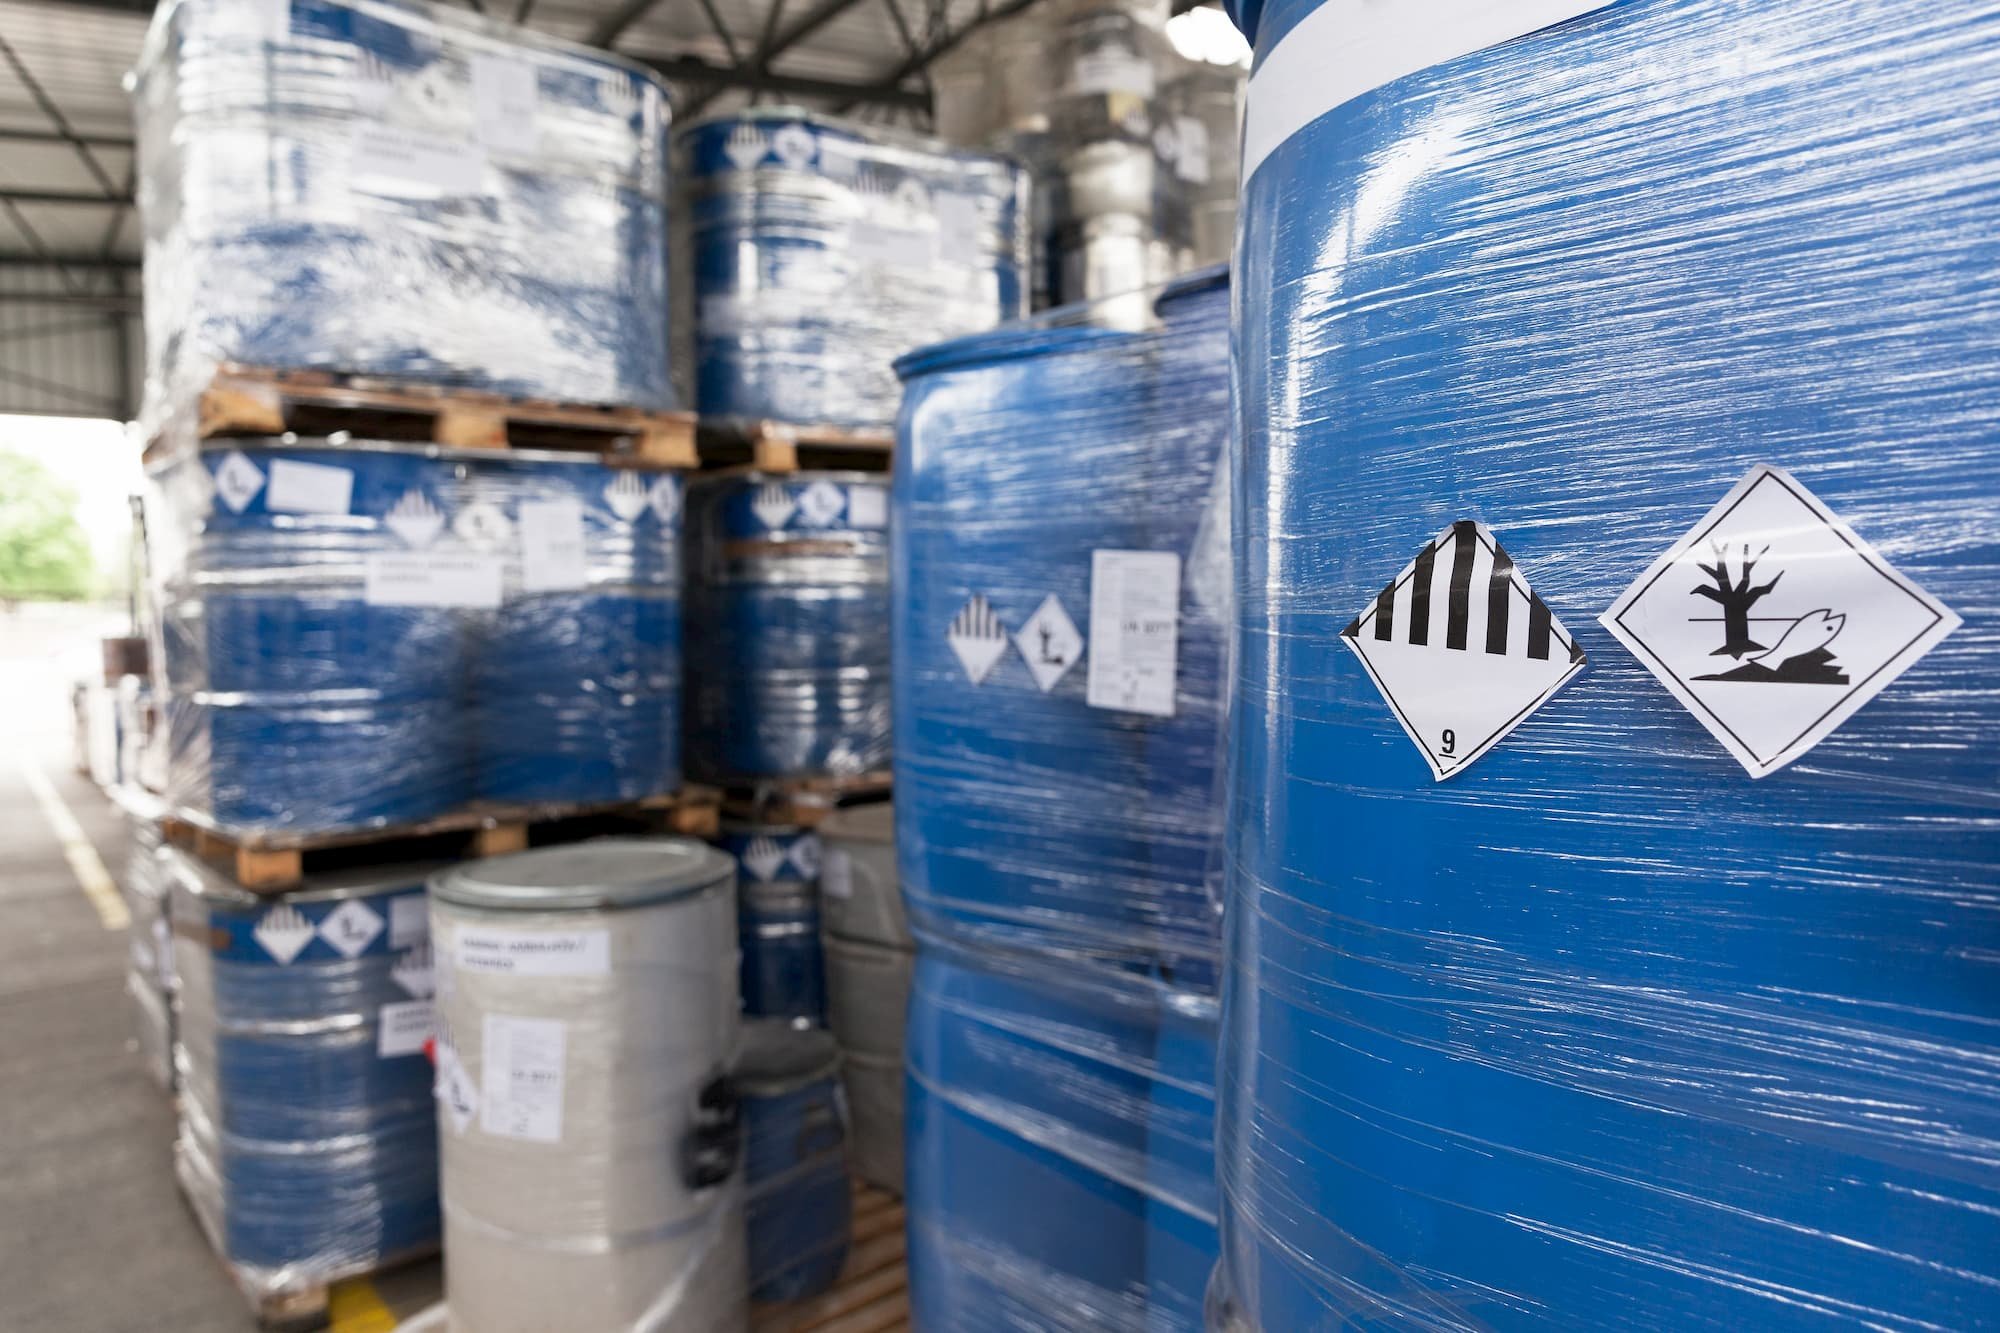 hazardous waste barrels in storage